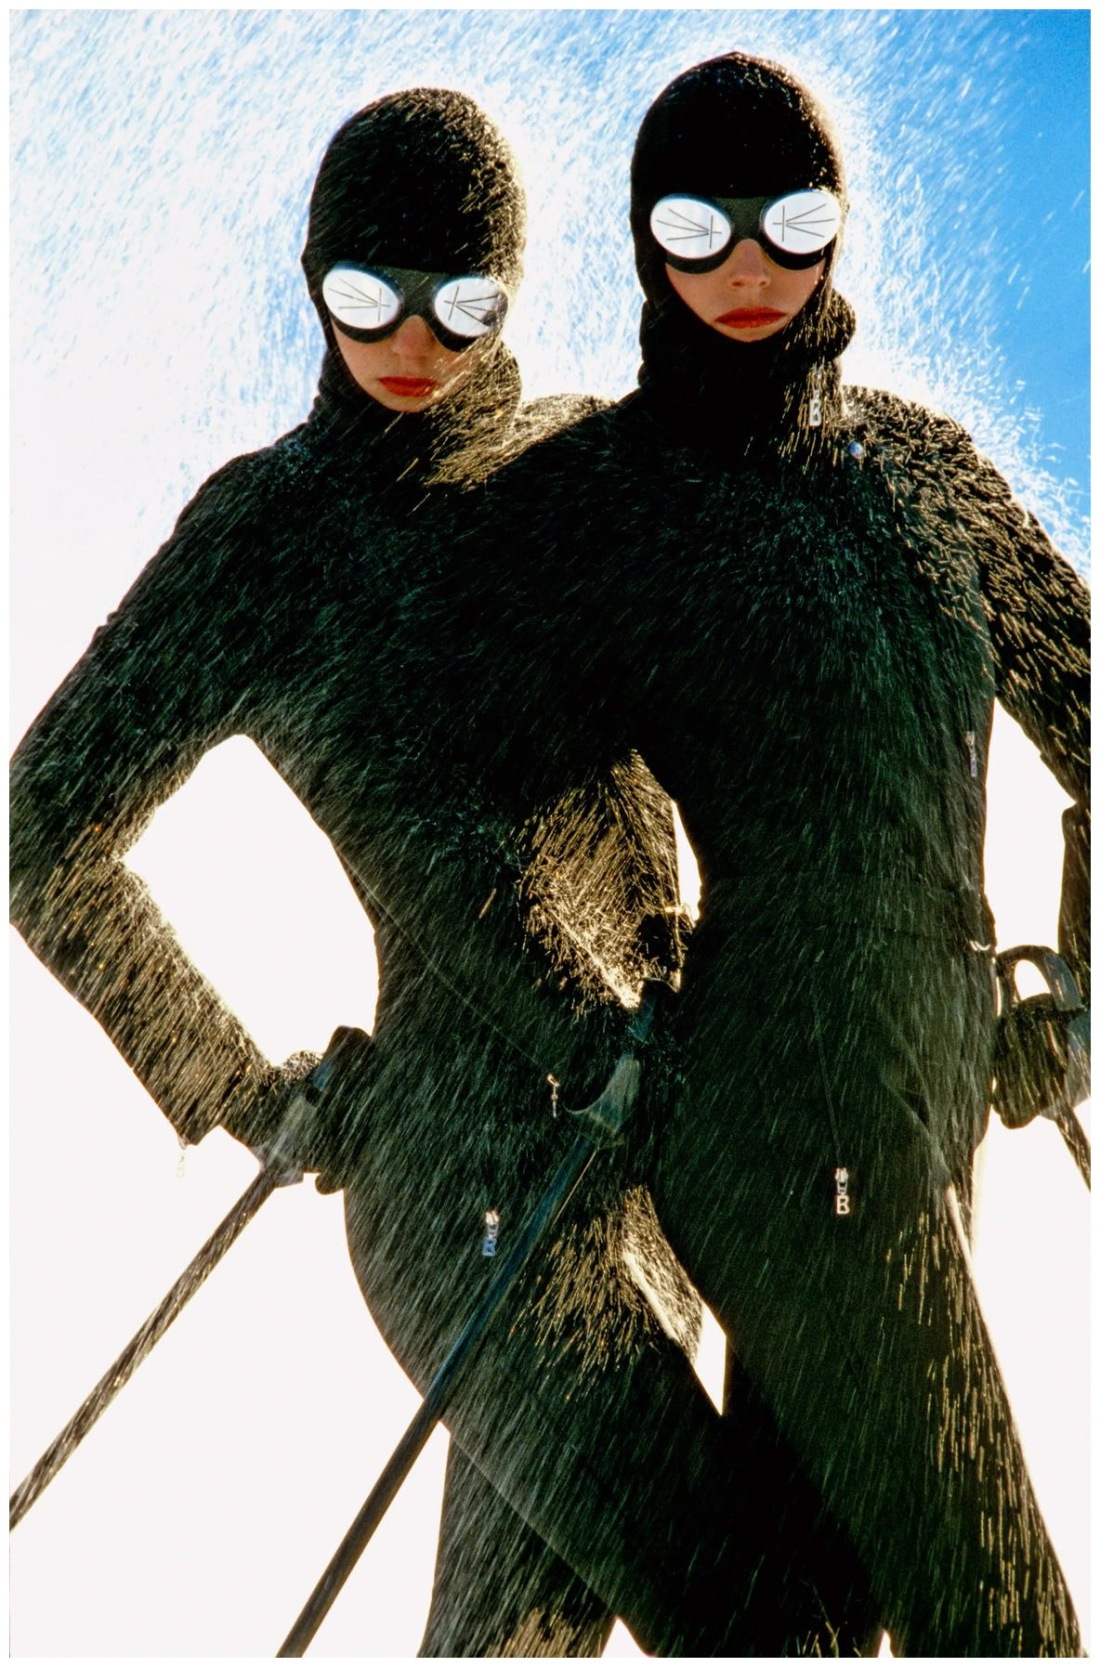 photo hans feurer bogner ski clothing 1980